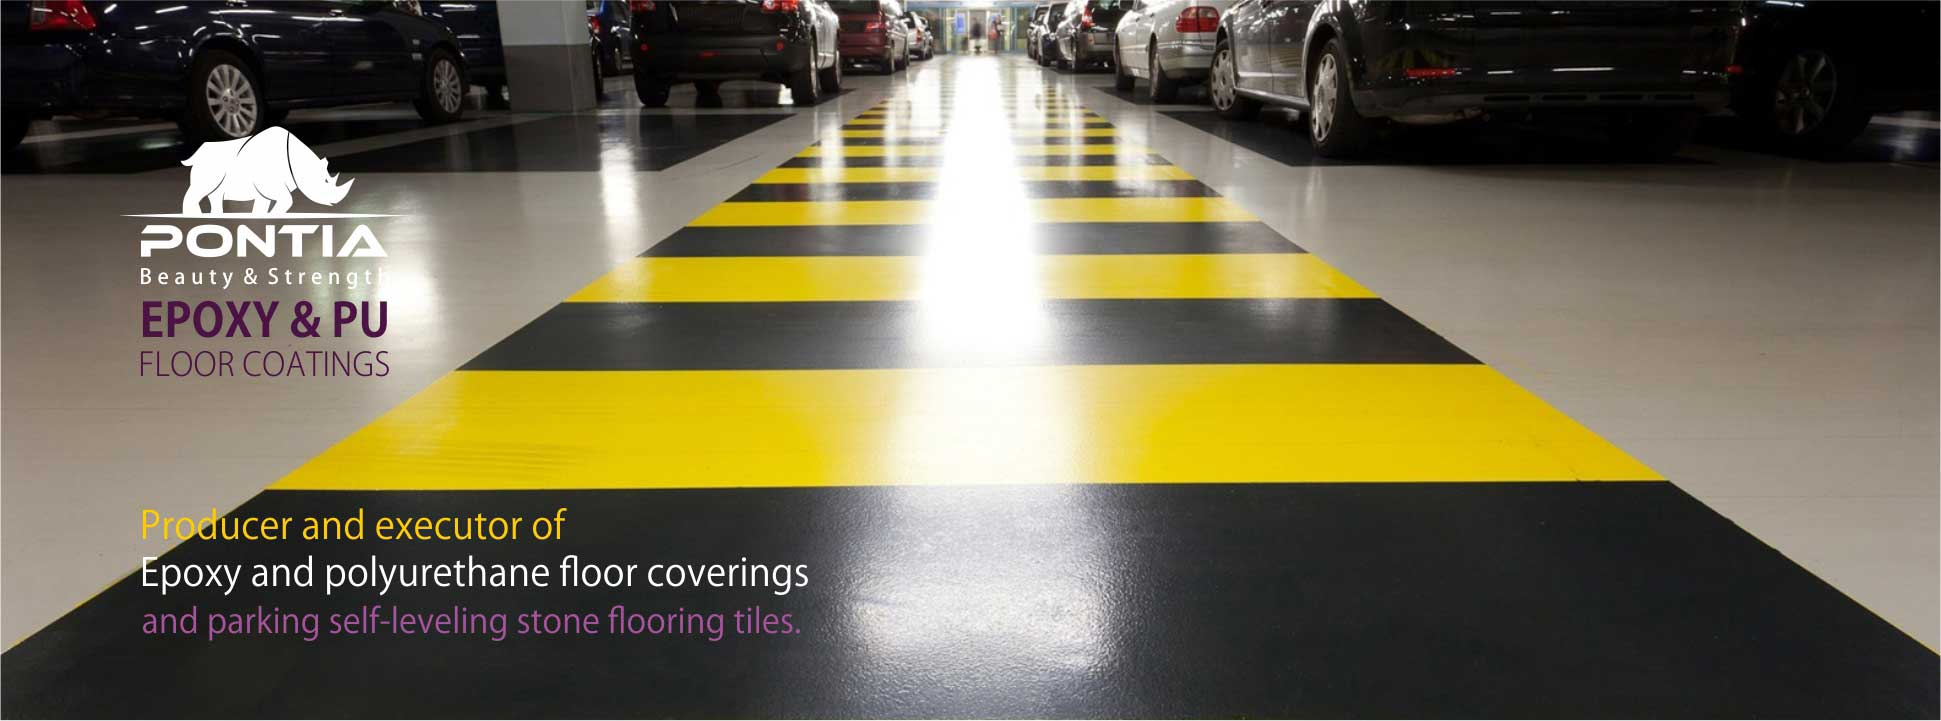 Pontia Floor Coatings